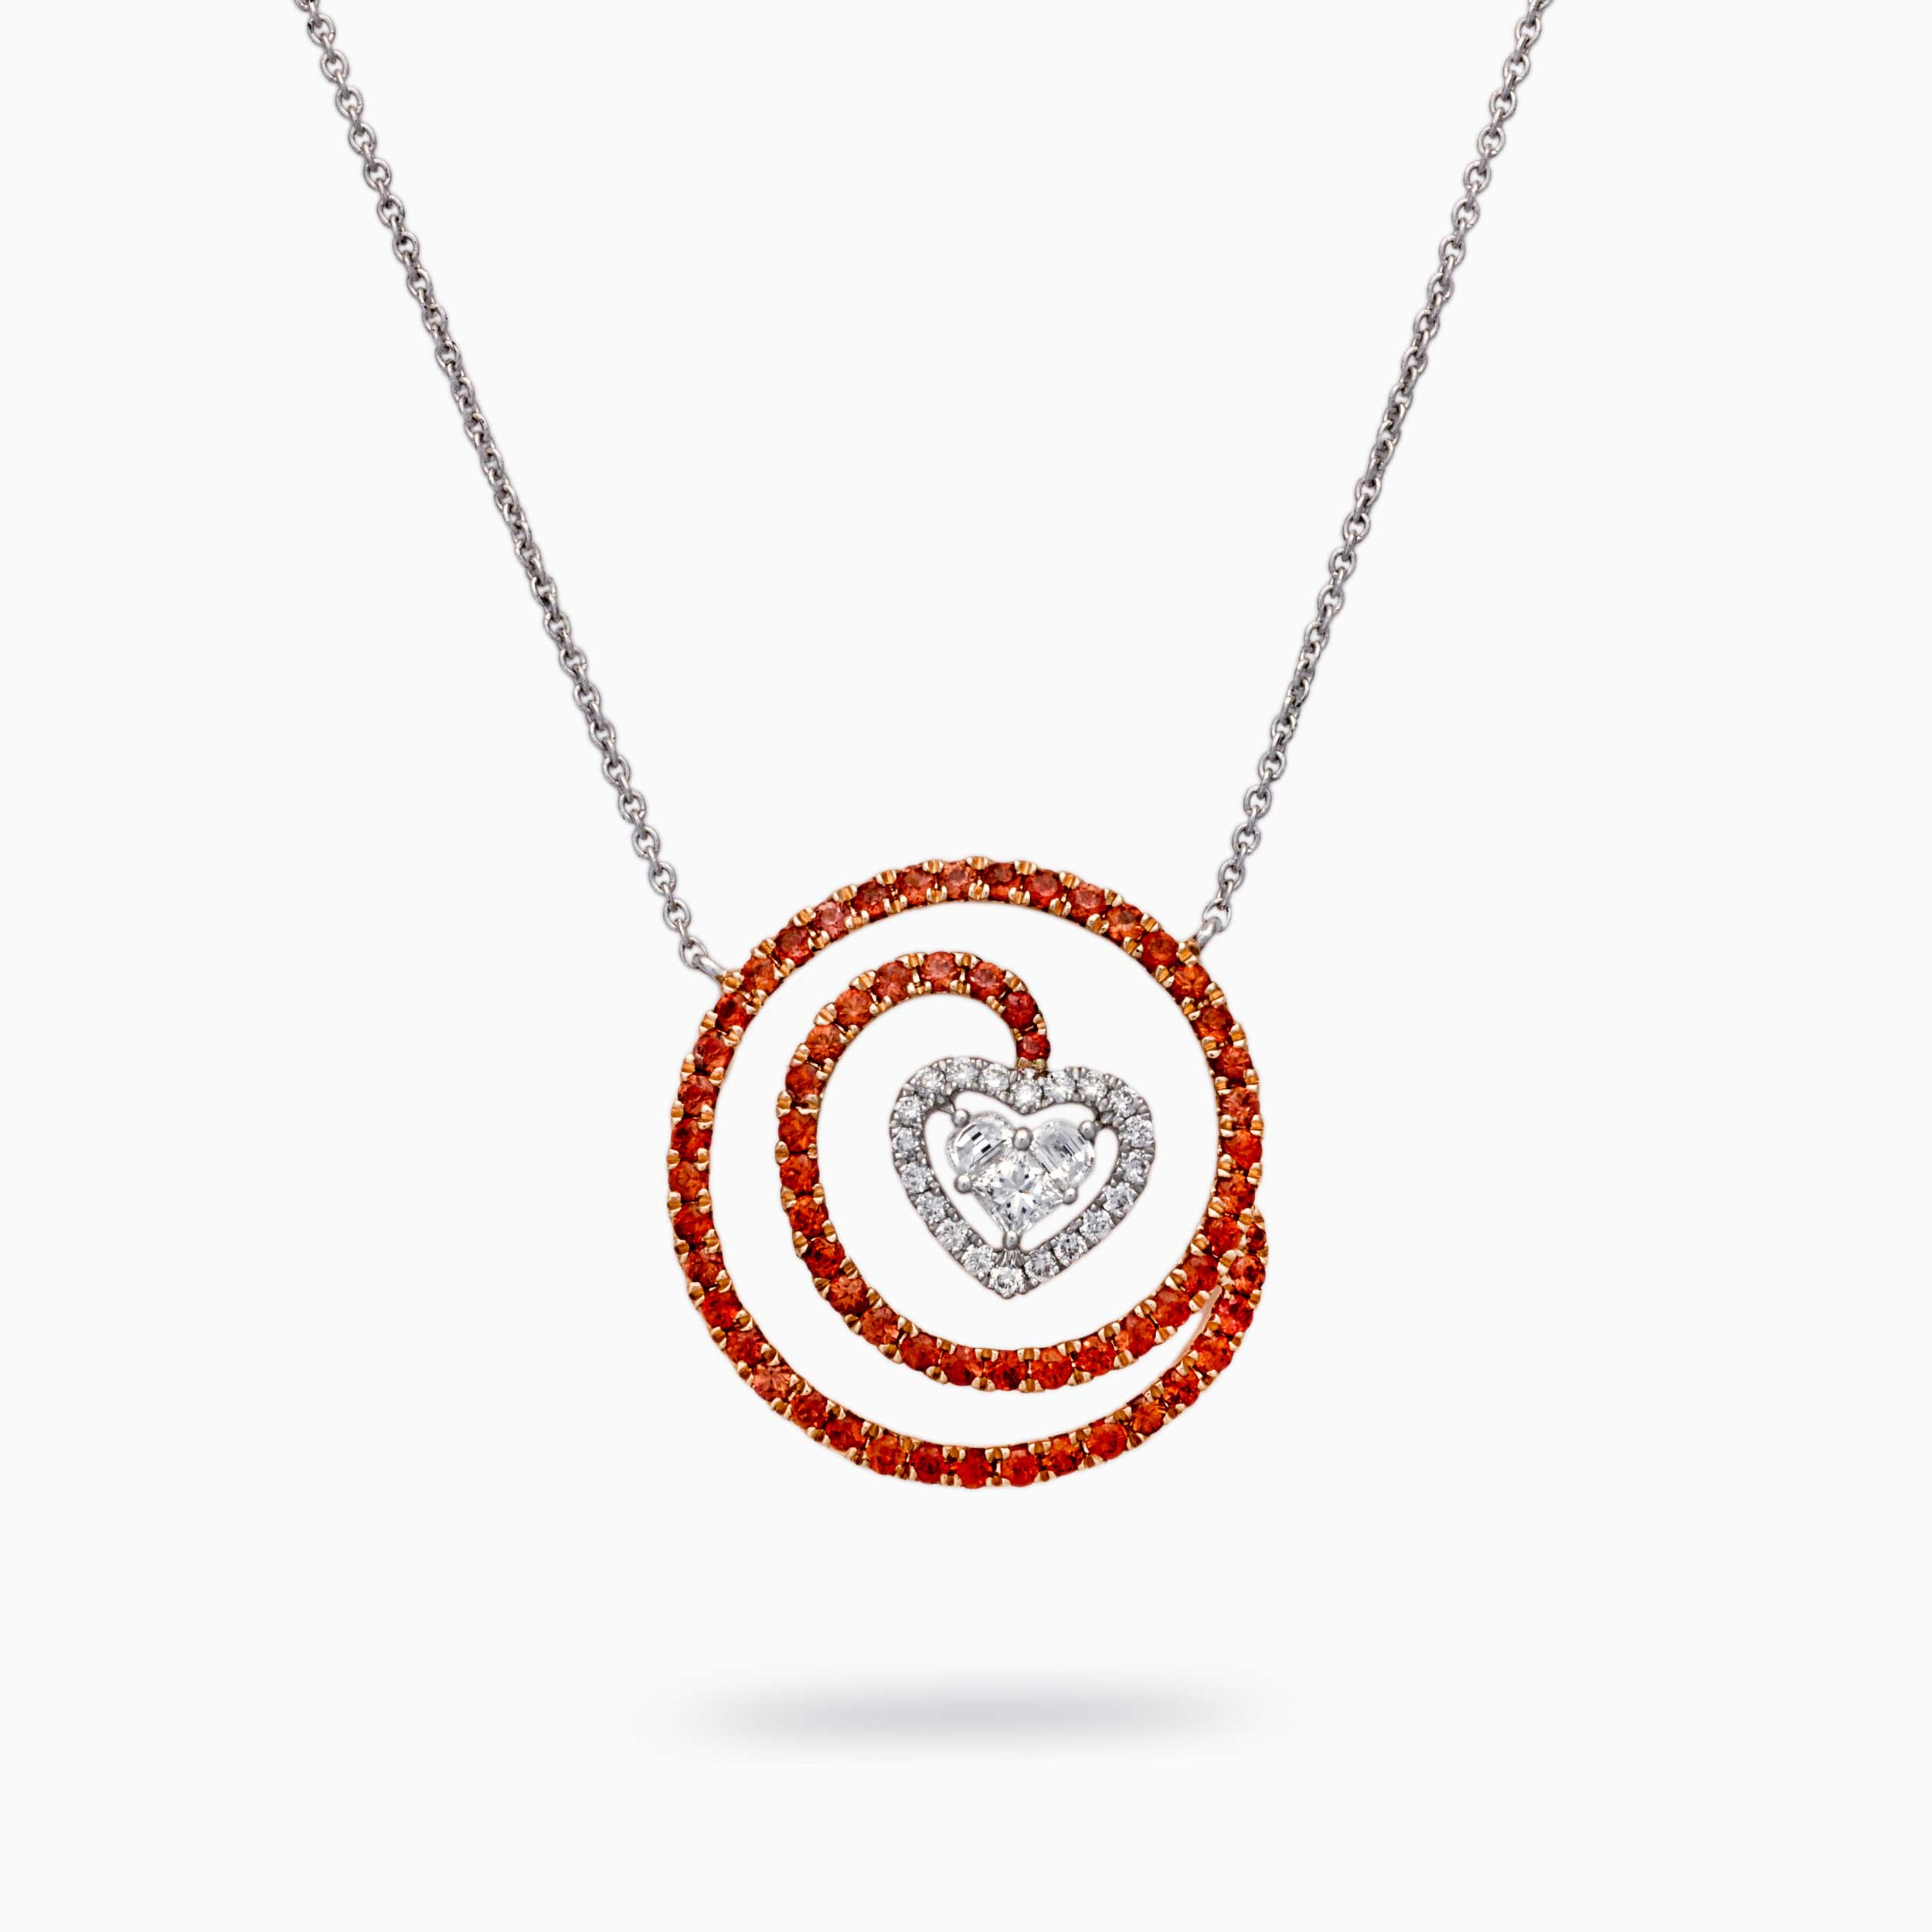 Love in colors Necklace in red*